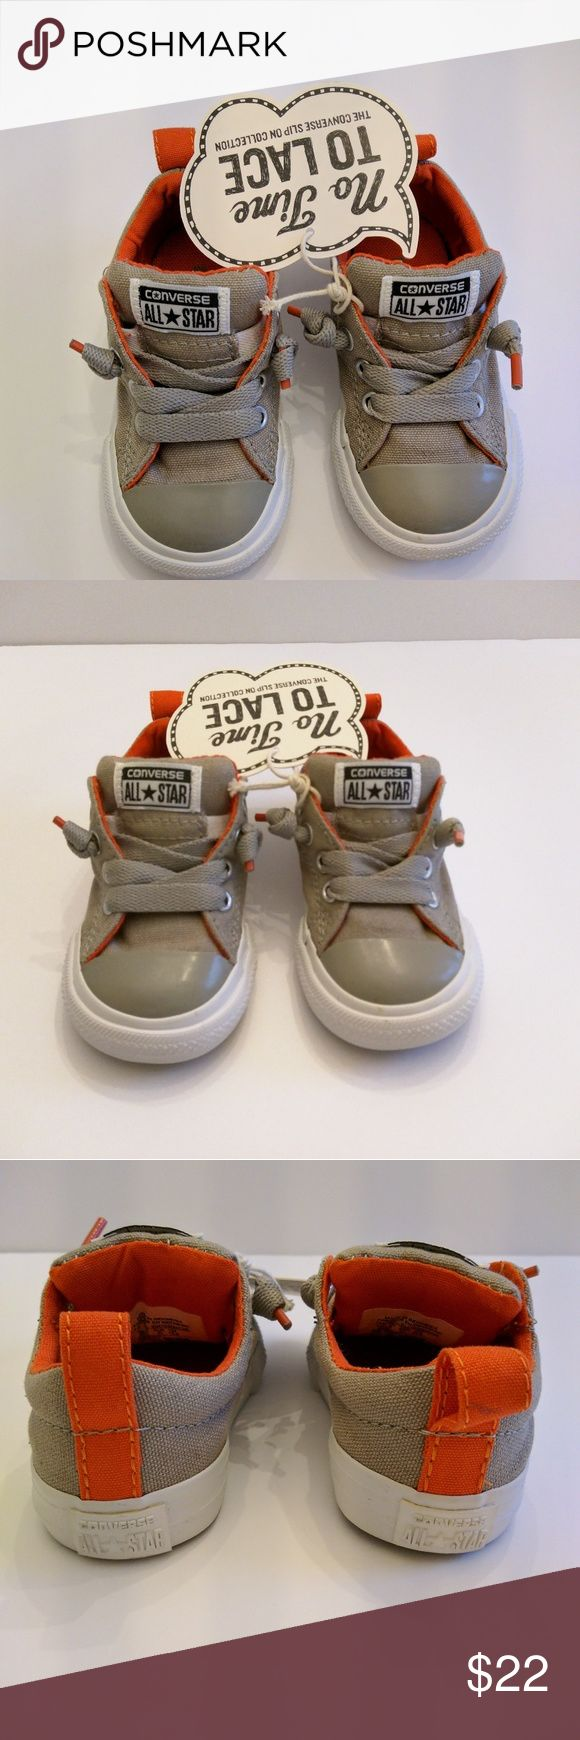 Light Brown Converse All Stars ⭐ No Tie shoe Brand New Converse Boys Size 5 Slip-on No Time to Lace Tennis Shoes. Light brown in color. Inside is orange. Converse Shoes Sneakers